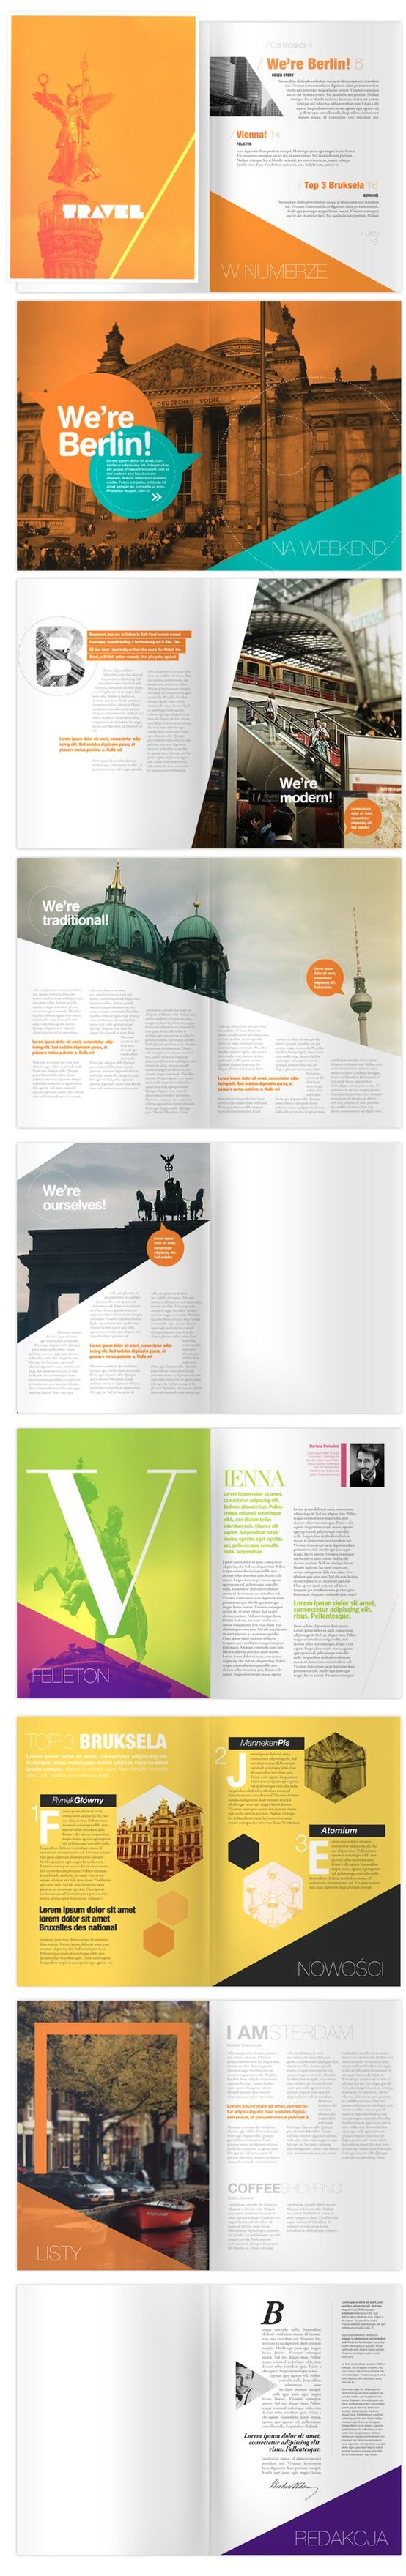 Image Spark - Image tagged editorial design, print design, layout - scoreandten more on http://html5themes.org                                                                                                                                                      Más